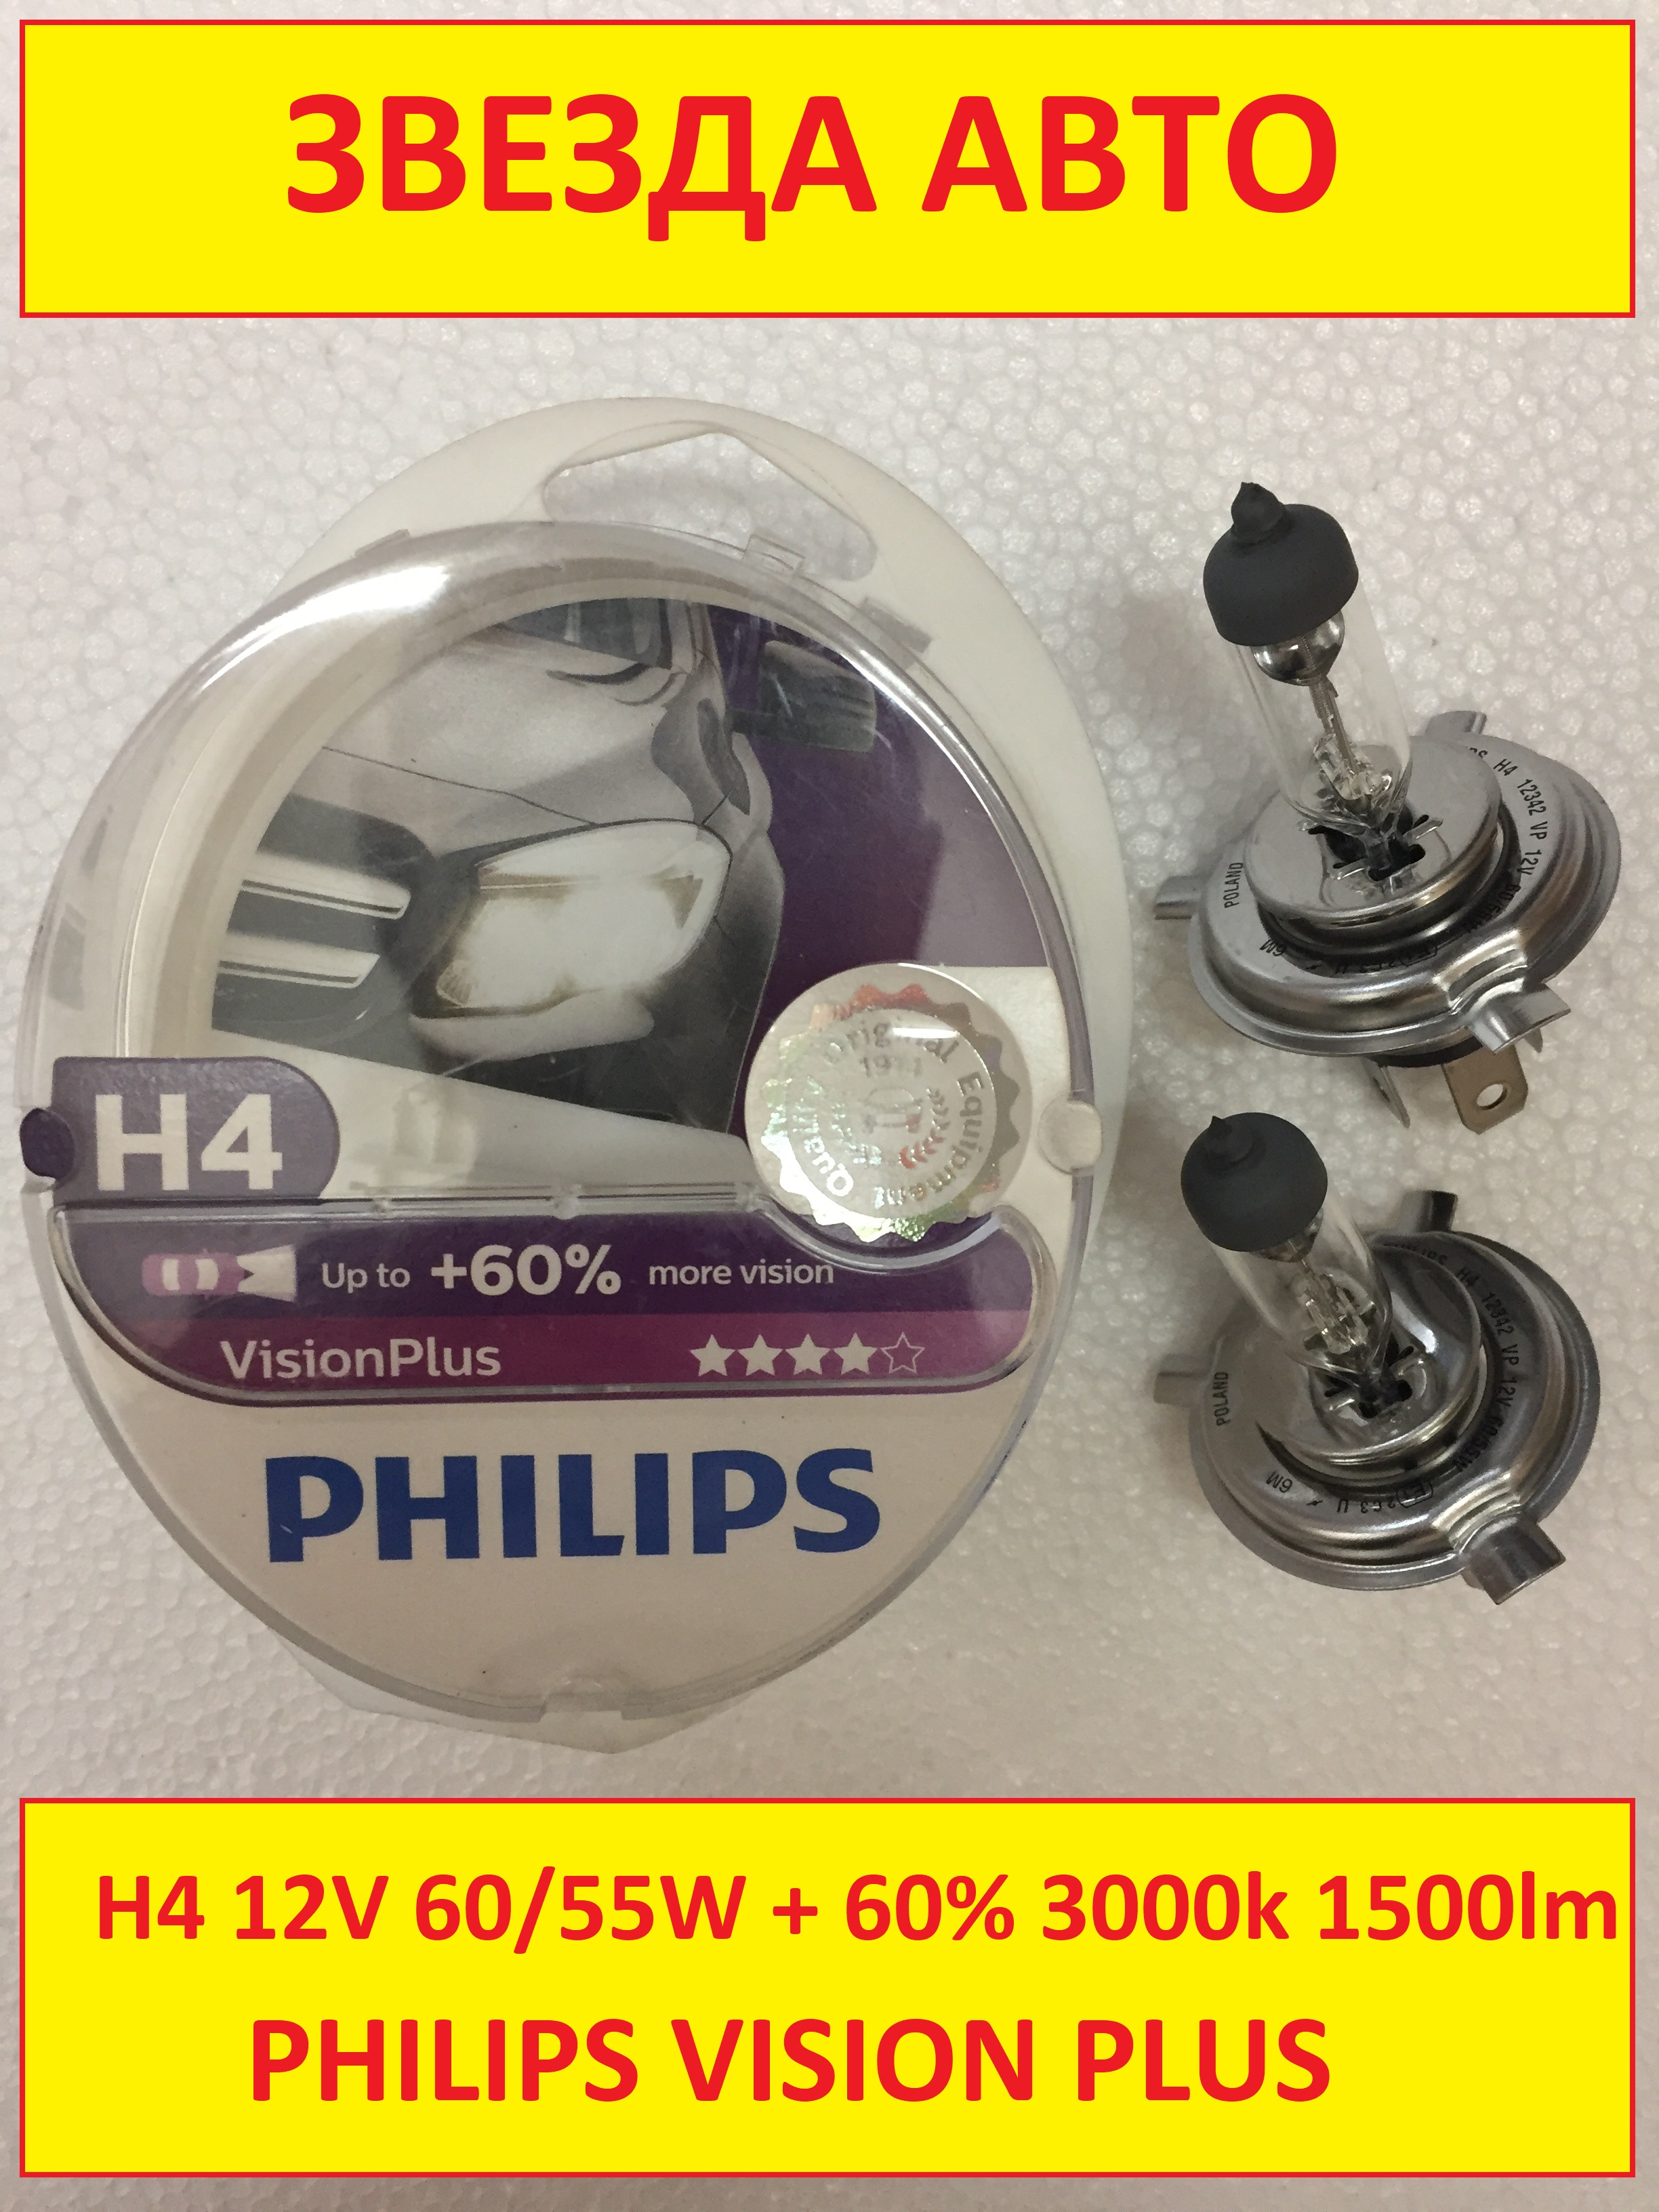 2pcs Philips halogen <font><b>lamp</b></font> <font><b>H4</b></font> 12v <font><b>60</b></font>/<font><b>55w</b></font> + <font><b>60</b></font>% Vision Plus 12342VPS2 for headlights image